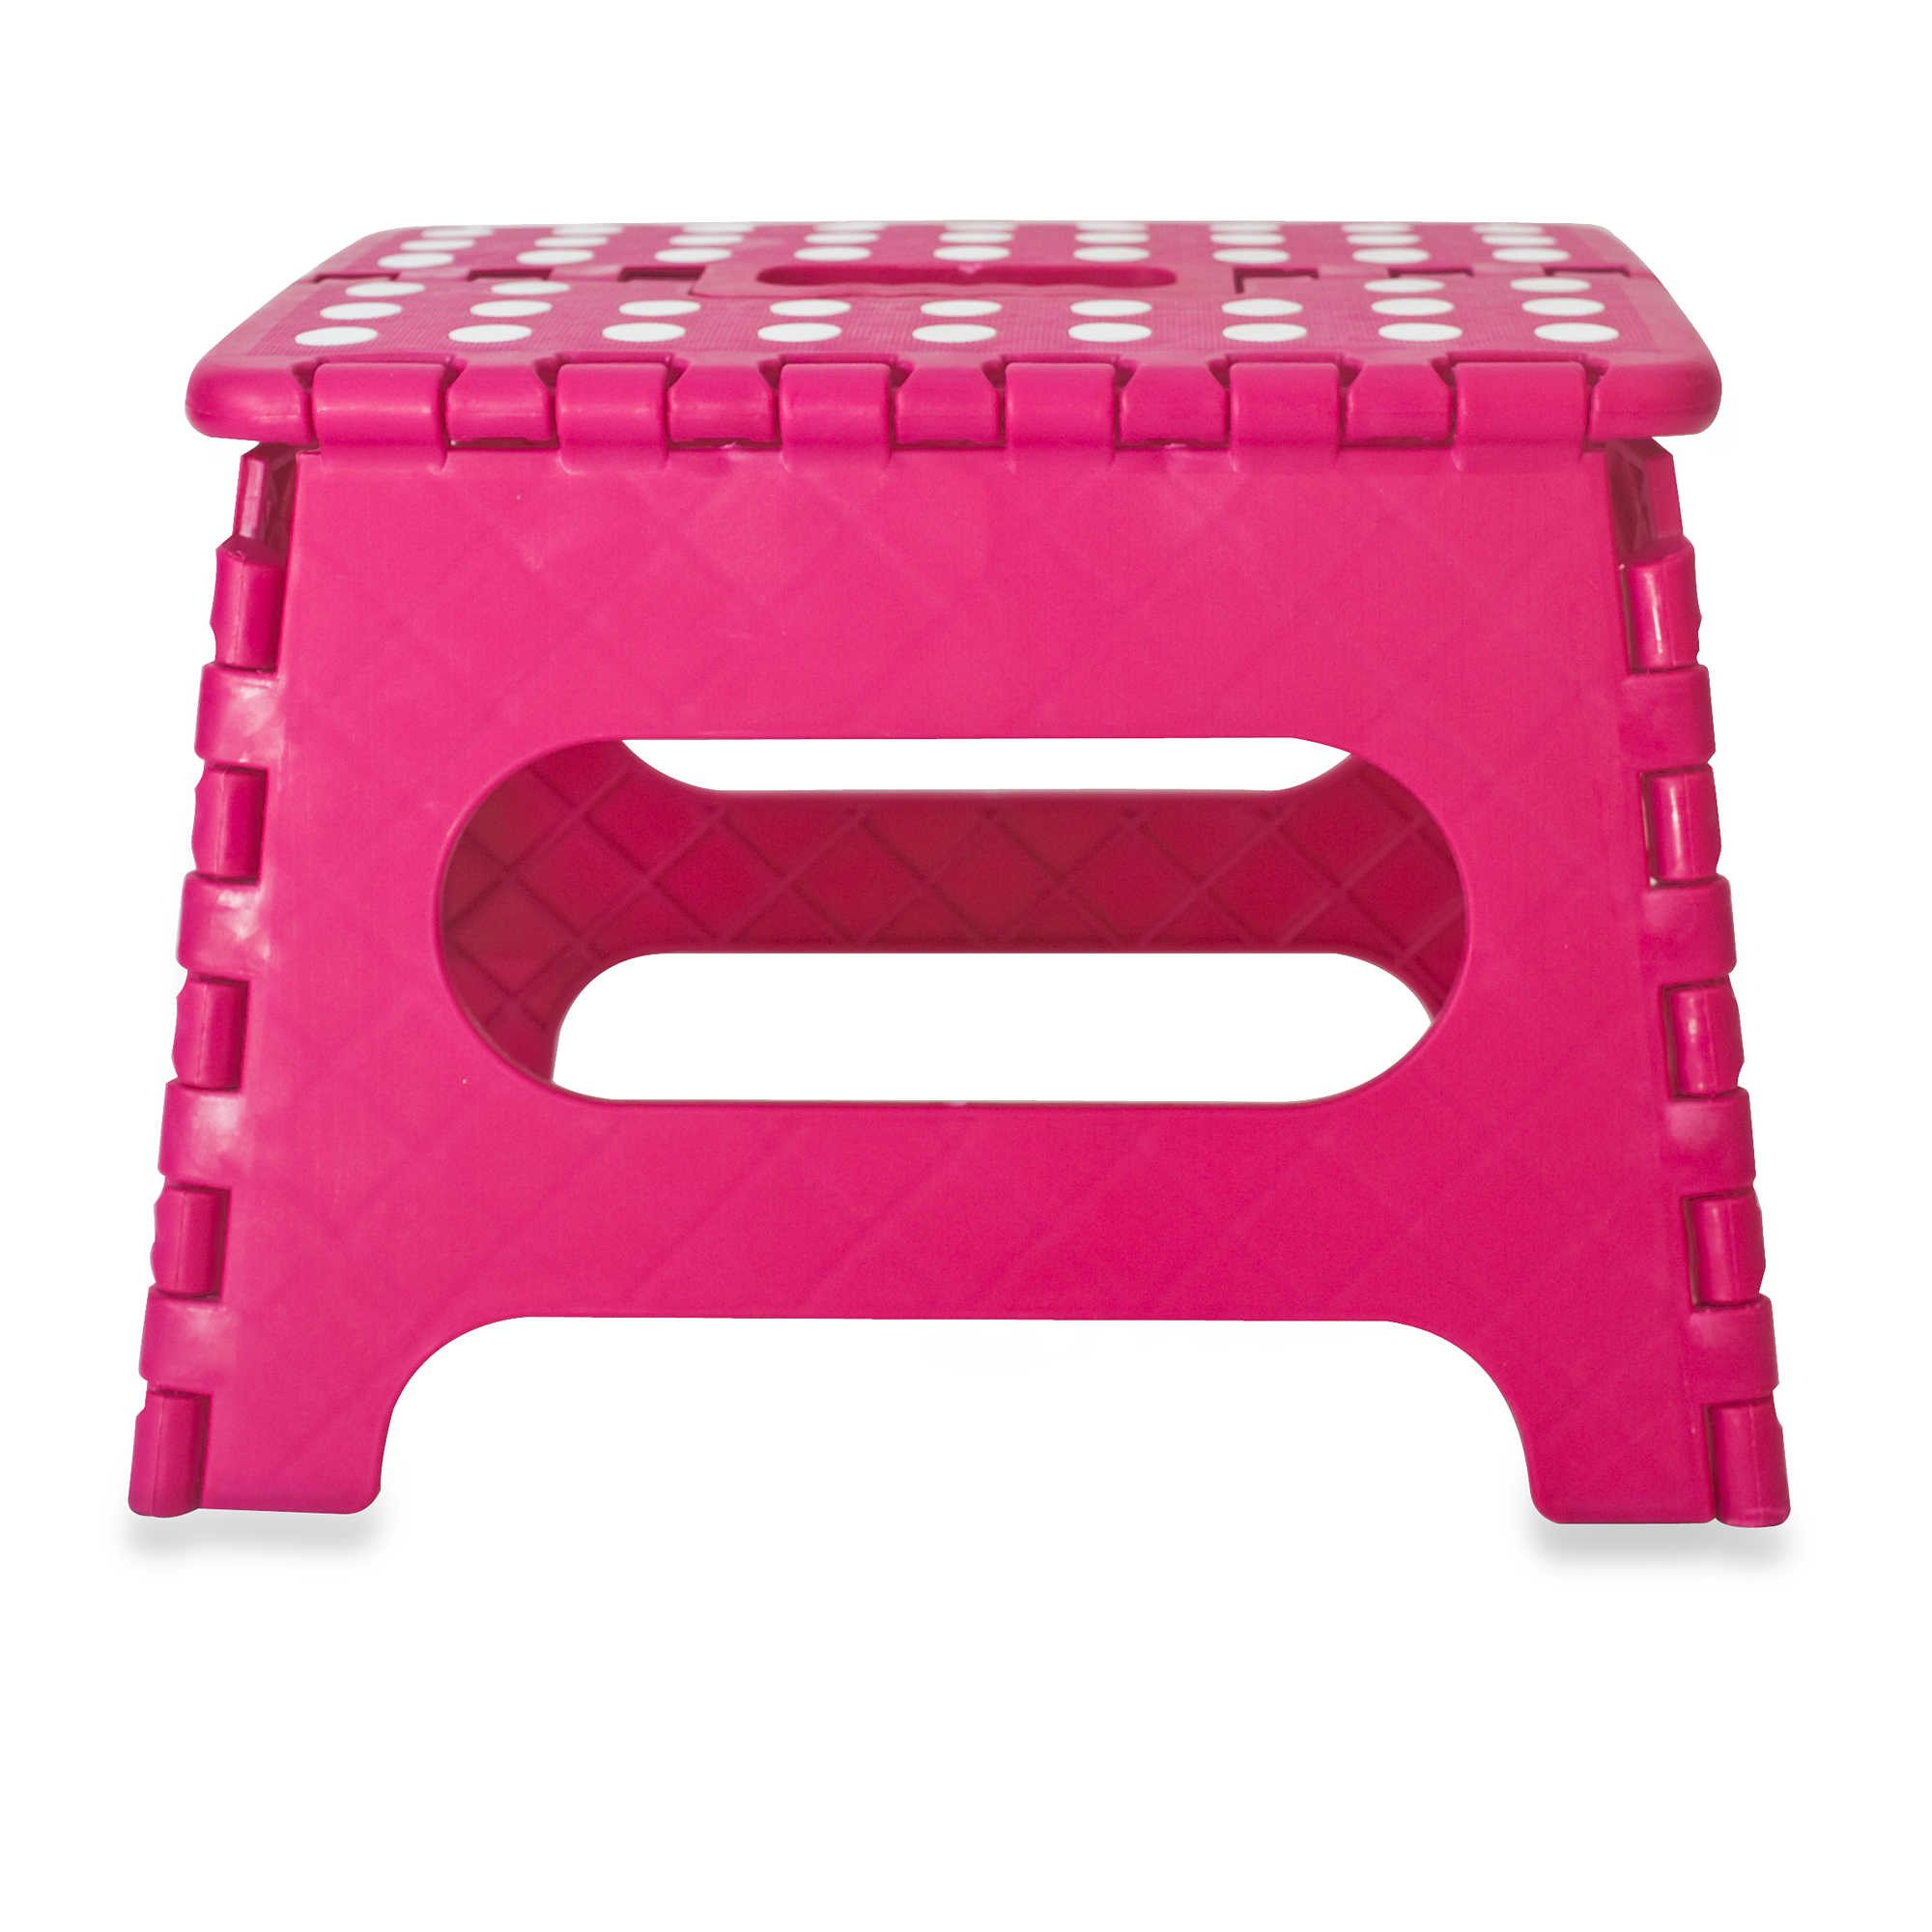 9 inch Folding Step Stool - Anti-Skid Foot Pads - 330lb Capacity (Pink)